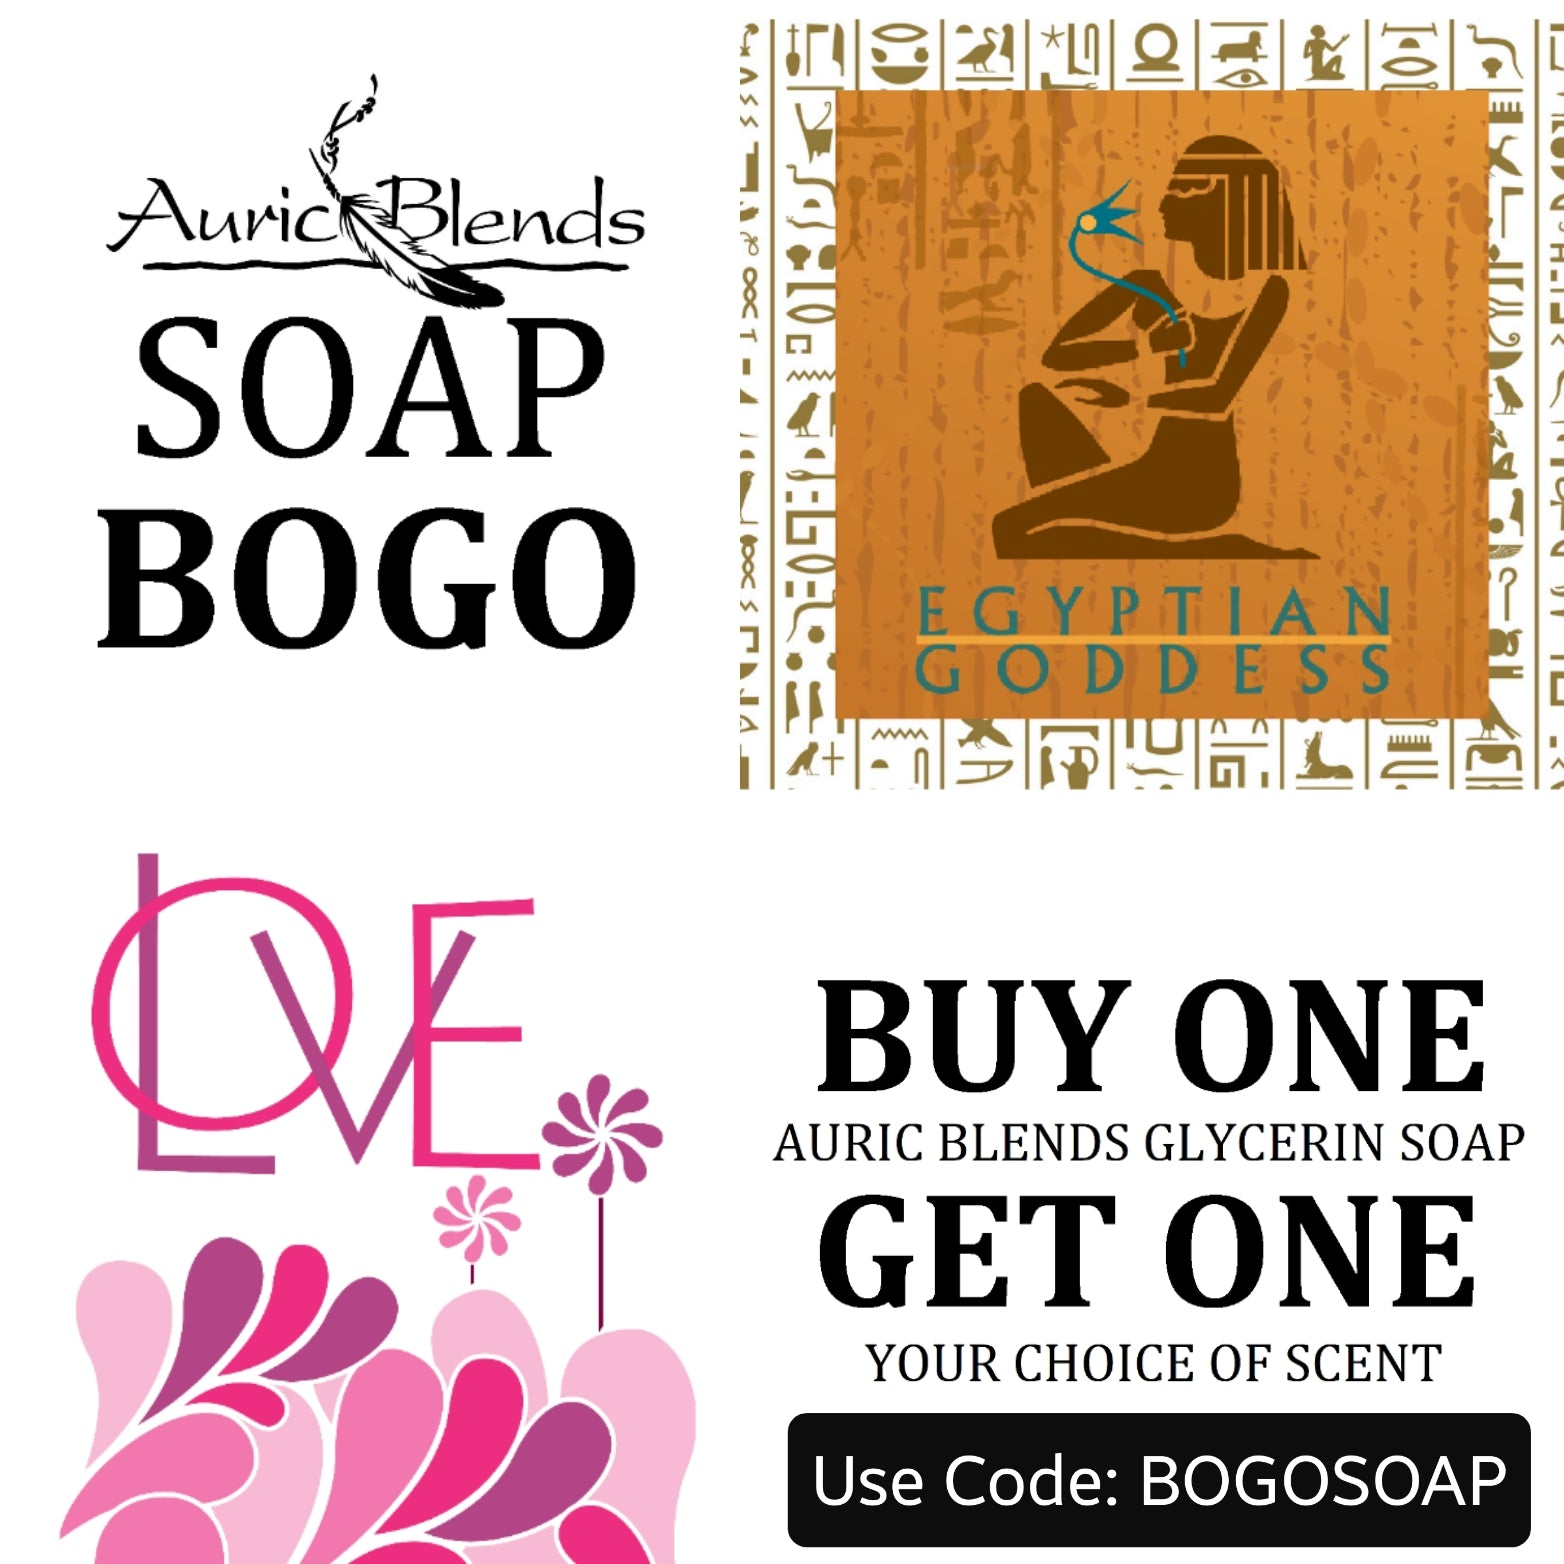 Auric Blends natural Glycerin Soap, buy one get one free